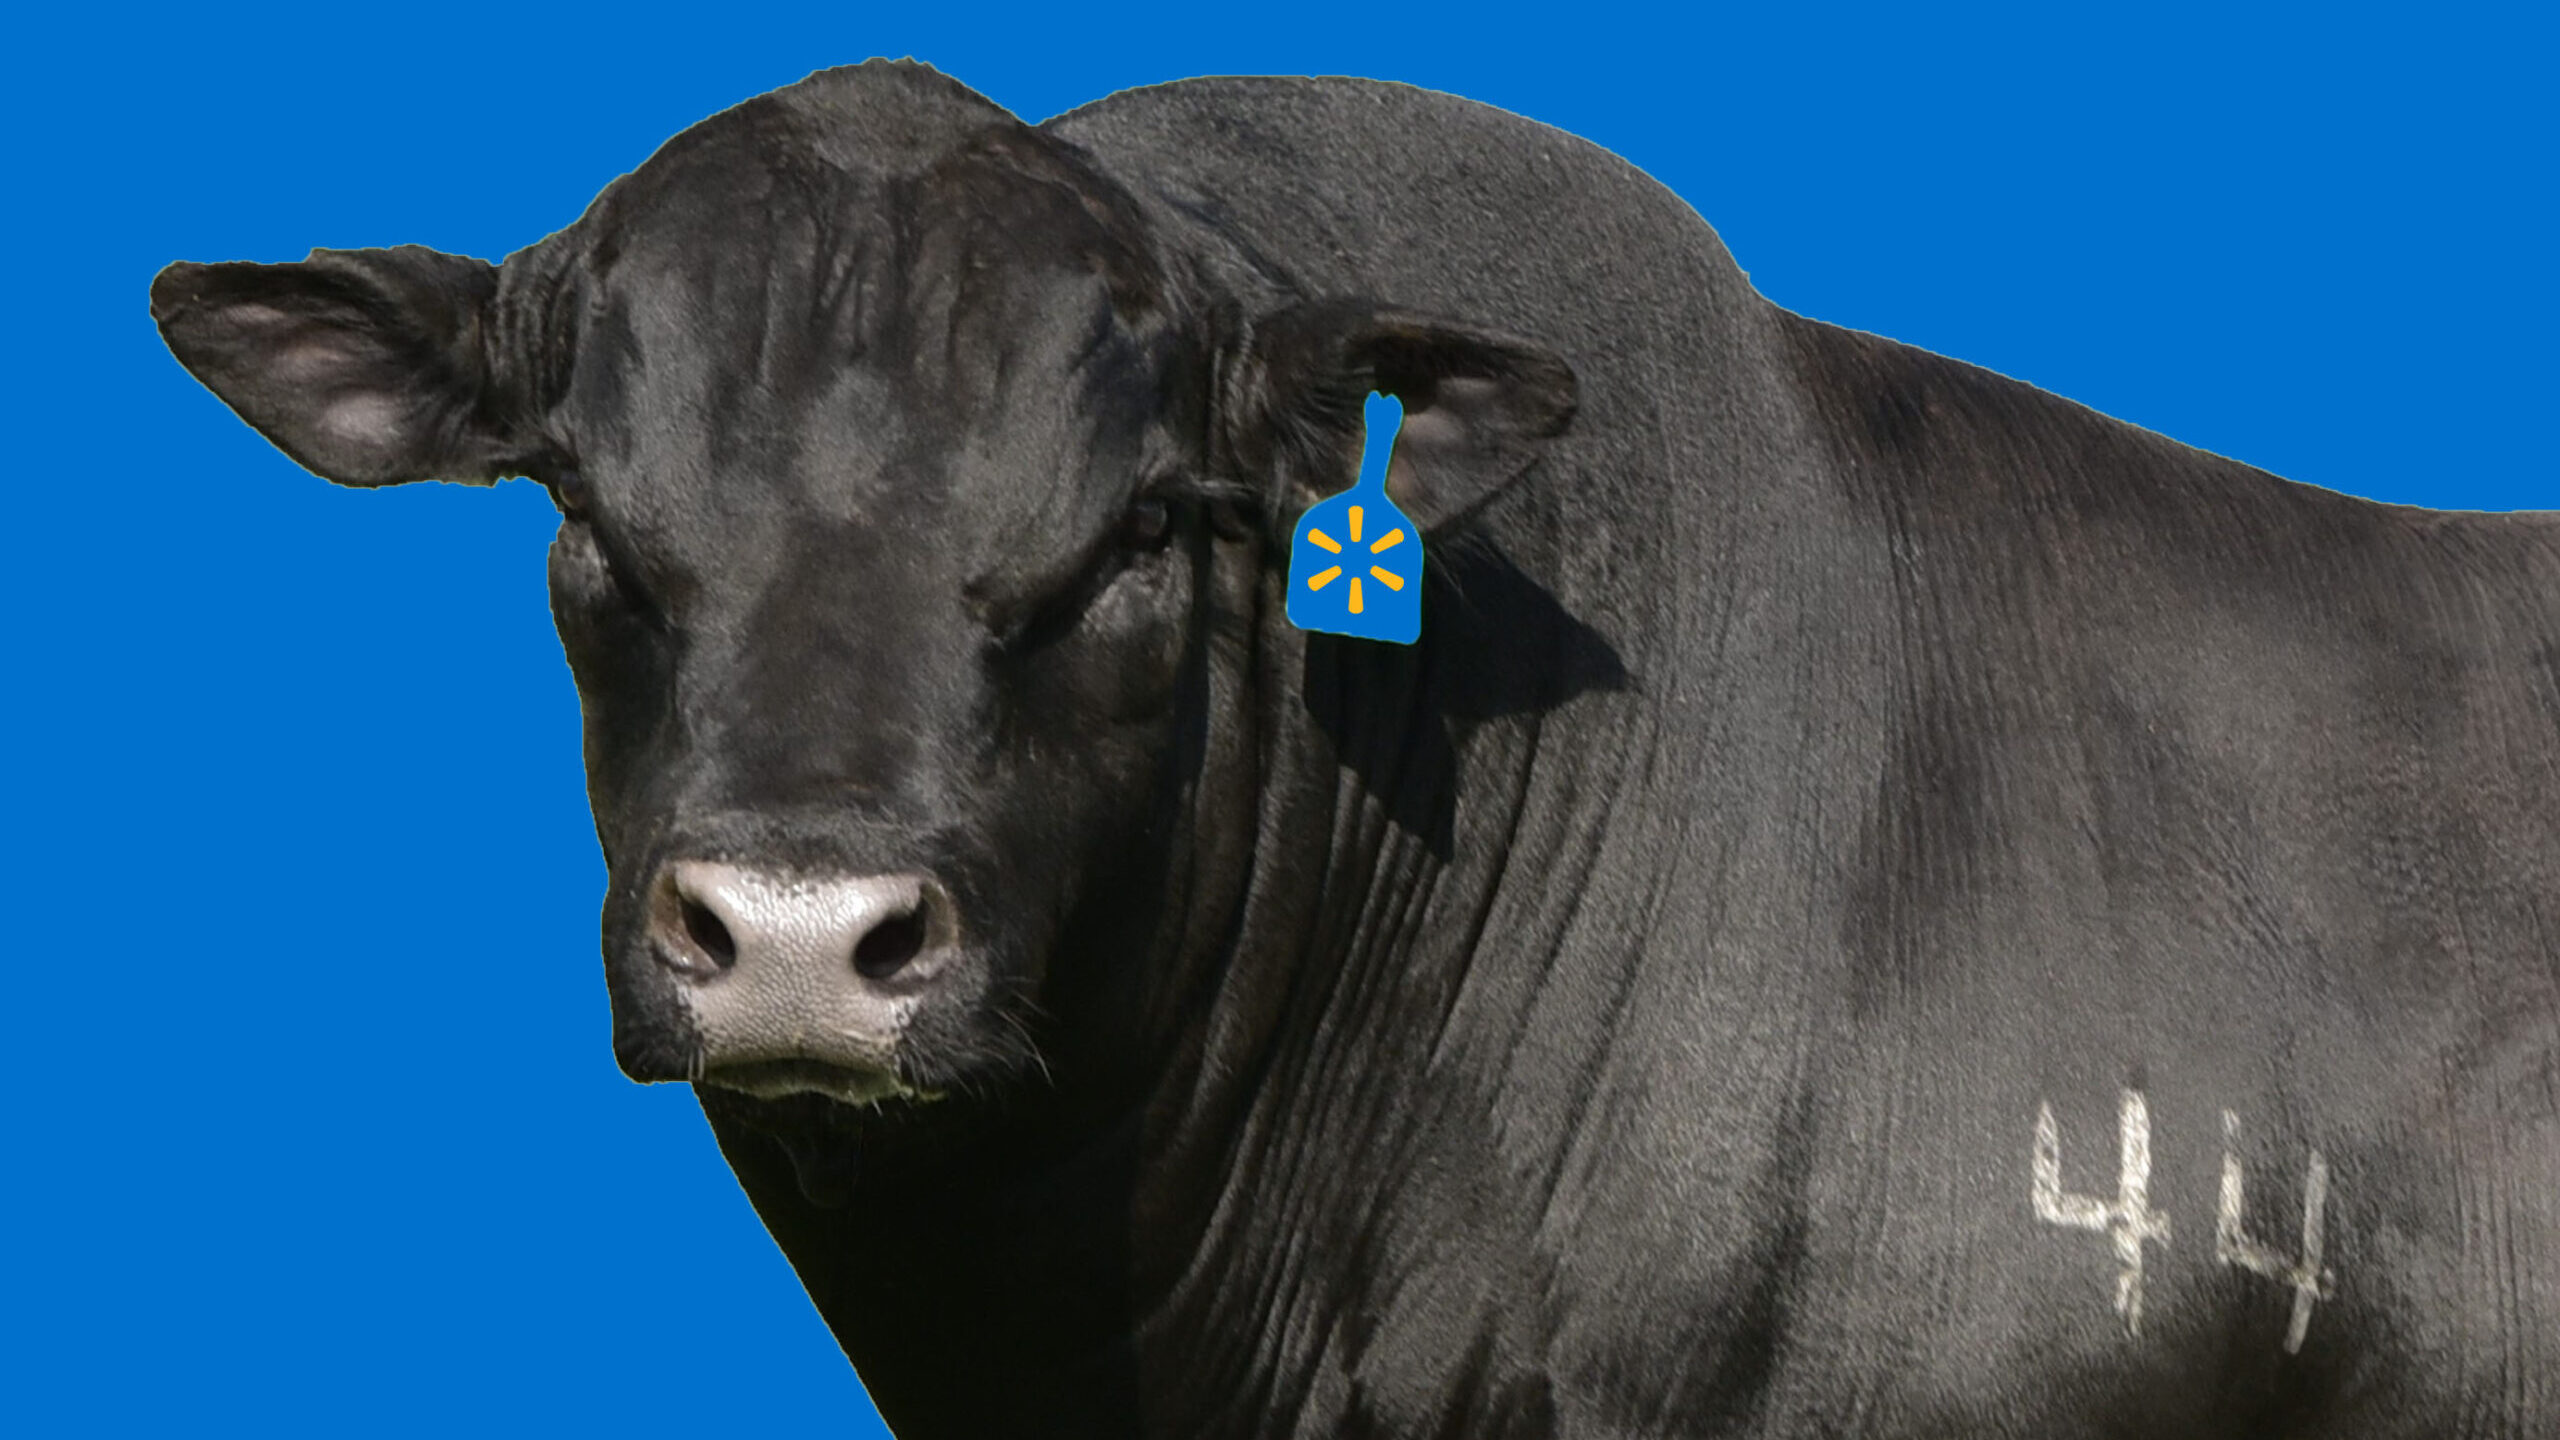 MEET AN ANIMAL: Texas bull 'Top Game' is fathering the next generation of Walmart's beef